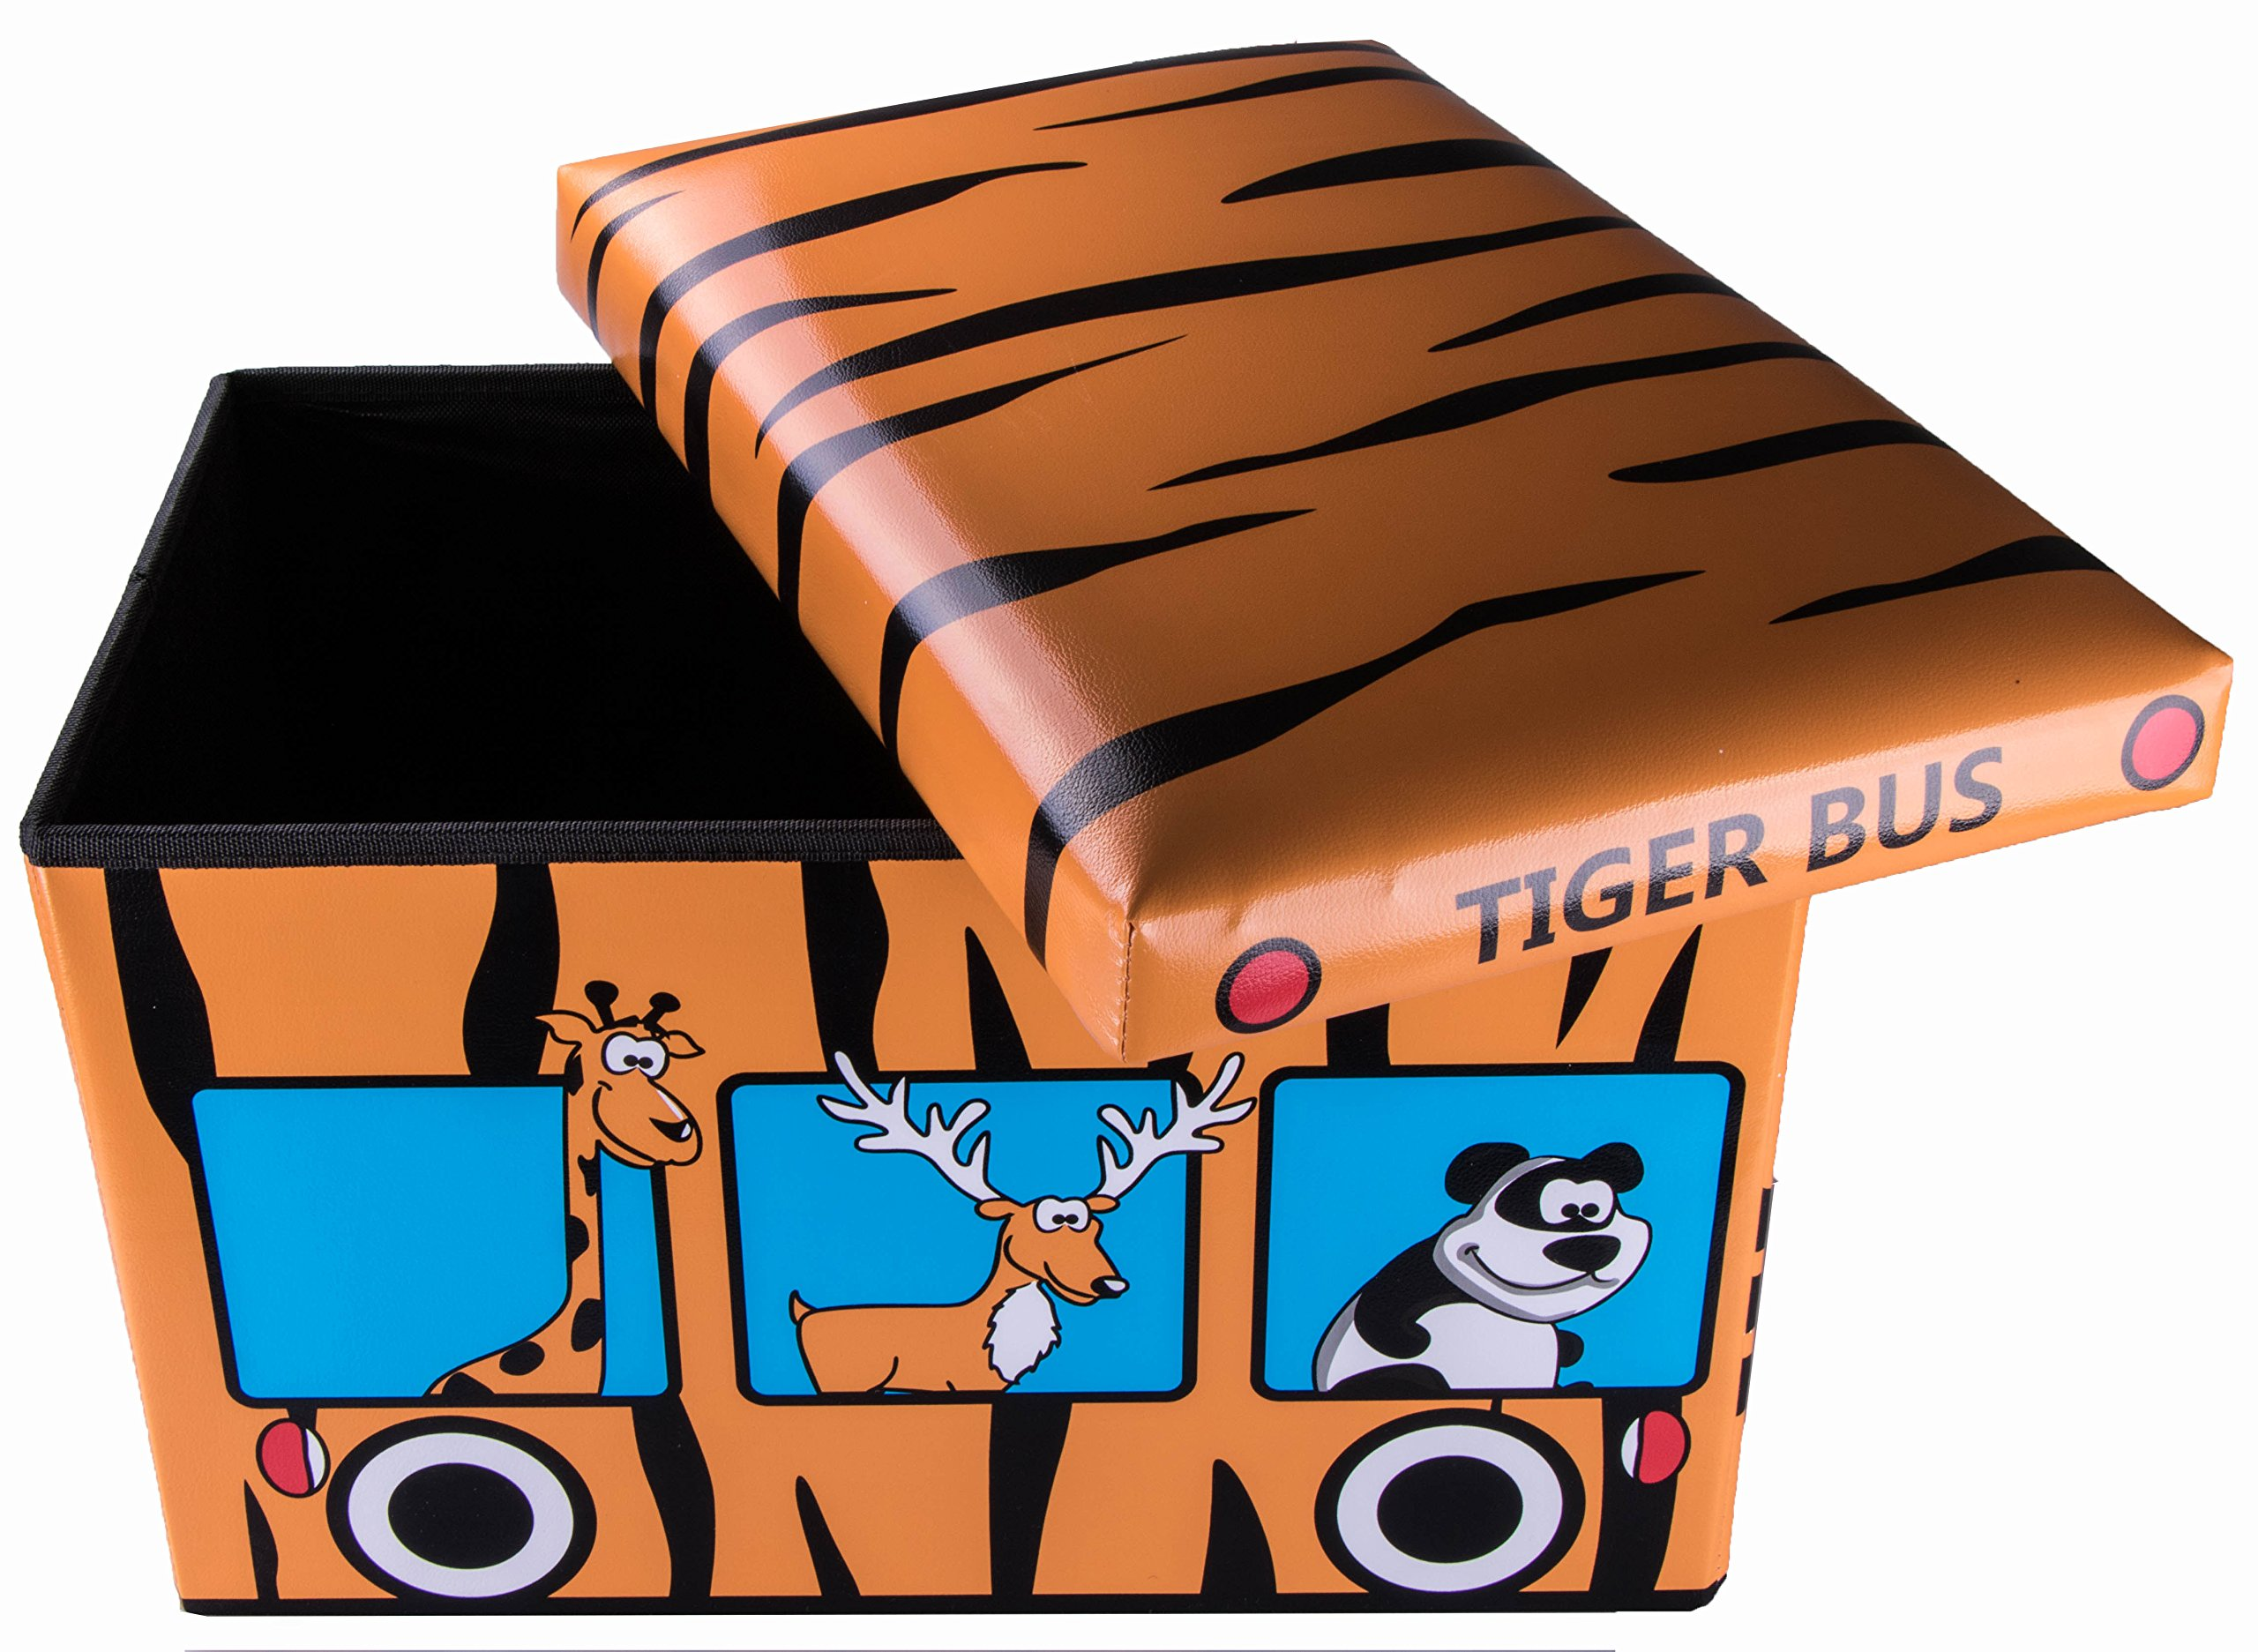 Safari Bus Collapsible Storage Organizer by Clever Creations | Storage Box Folding Storage Ottoman for Your Bedroom | Perfect Size Storage Chest for Books, Shoes & Games by Clever Creations (Image #2)